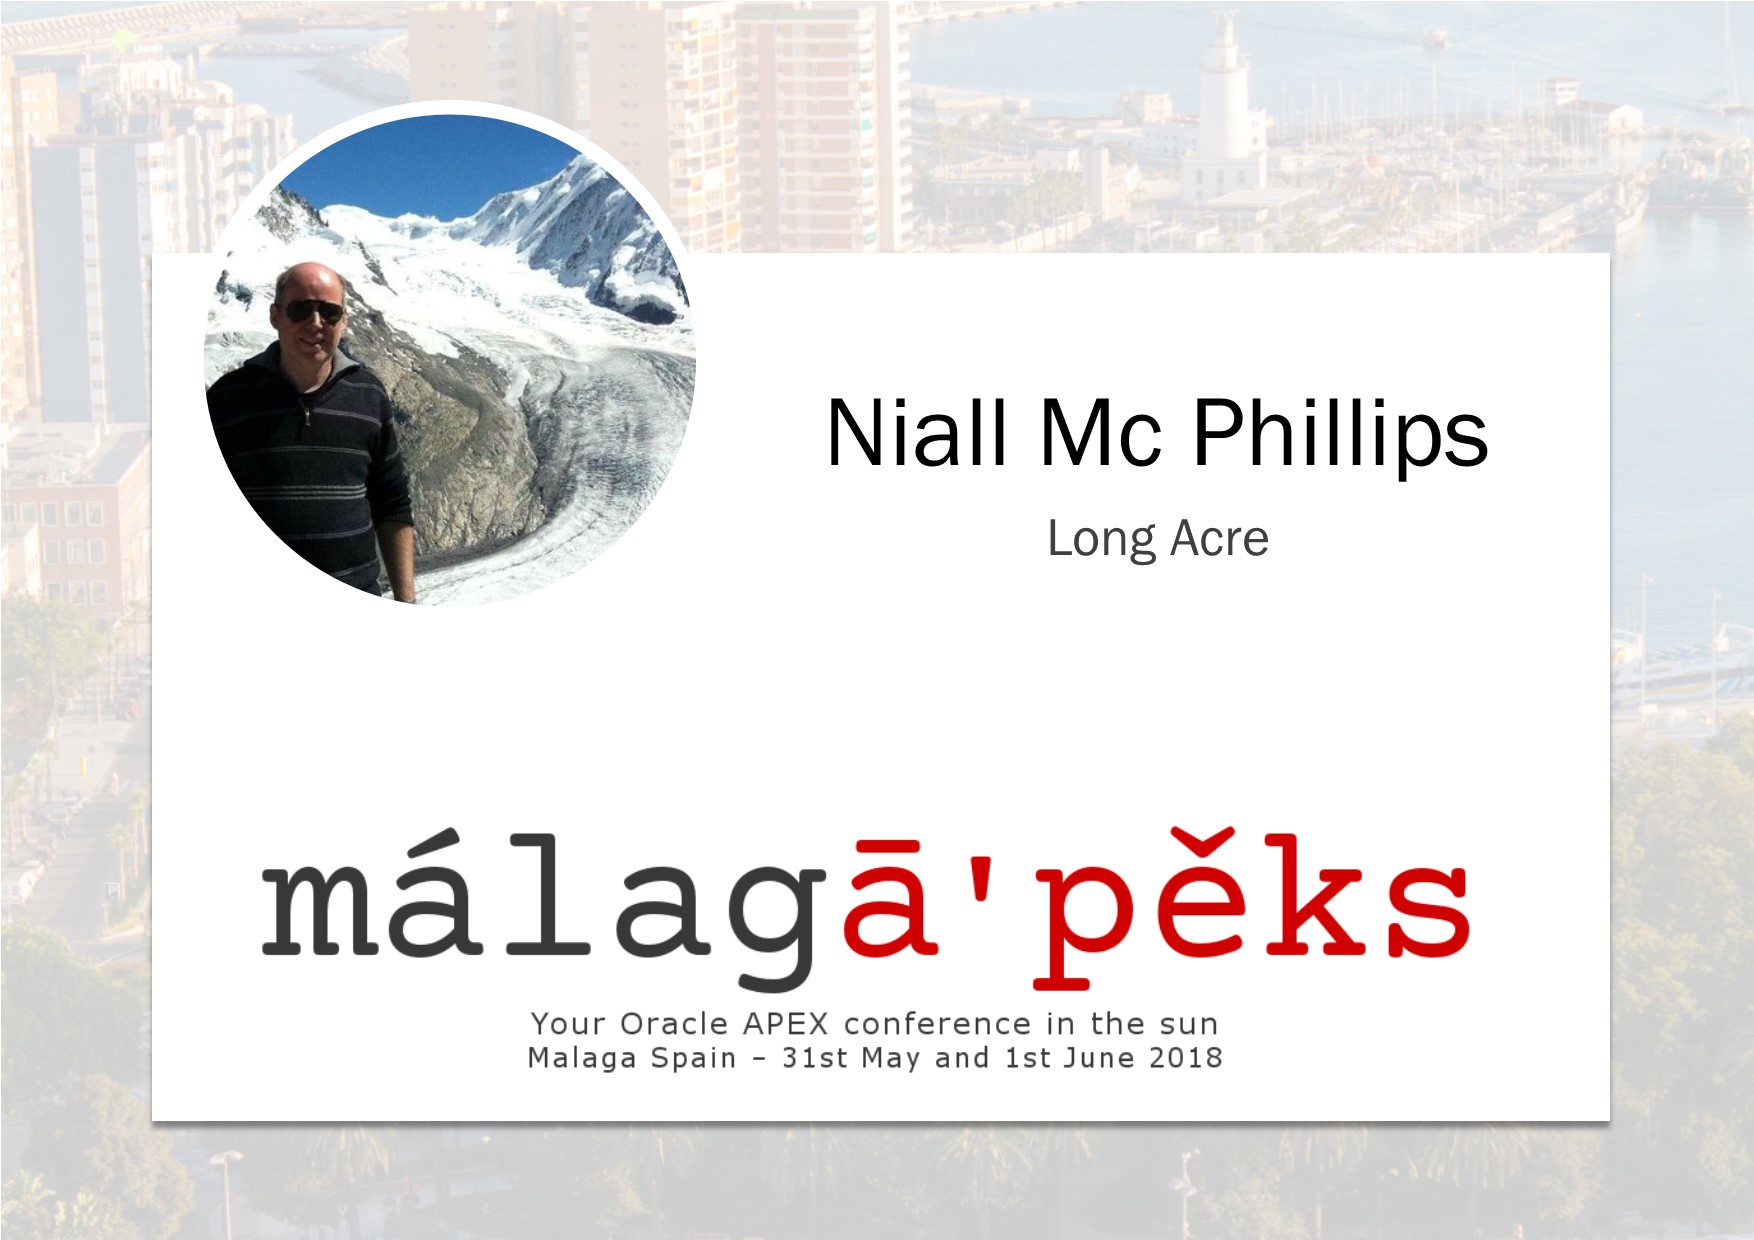 malagapex - niall mc phillips